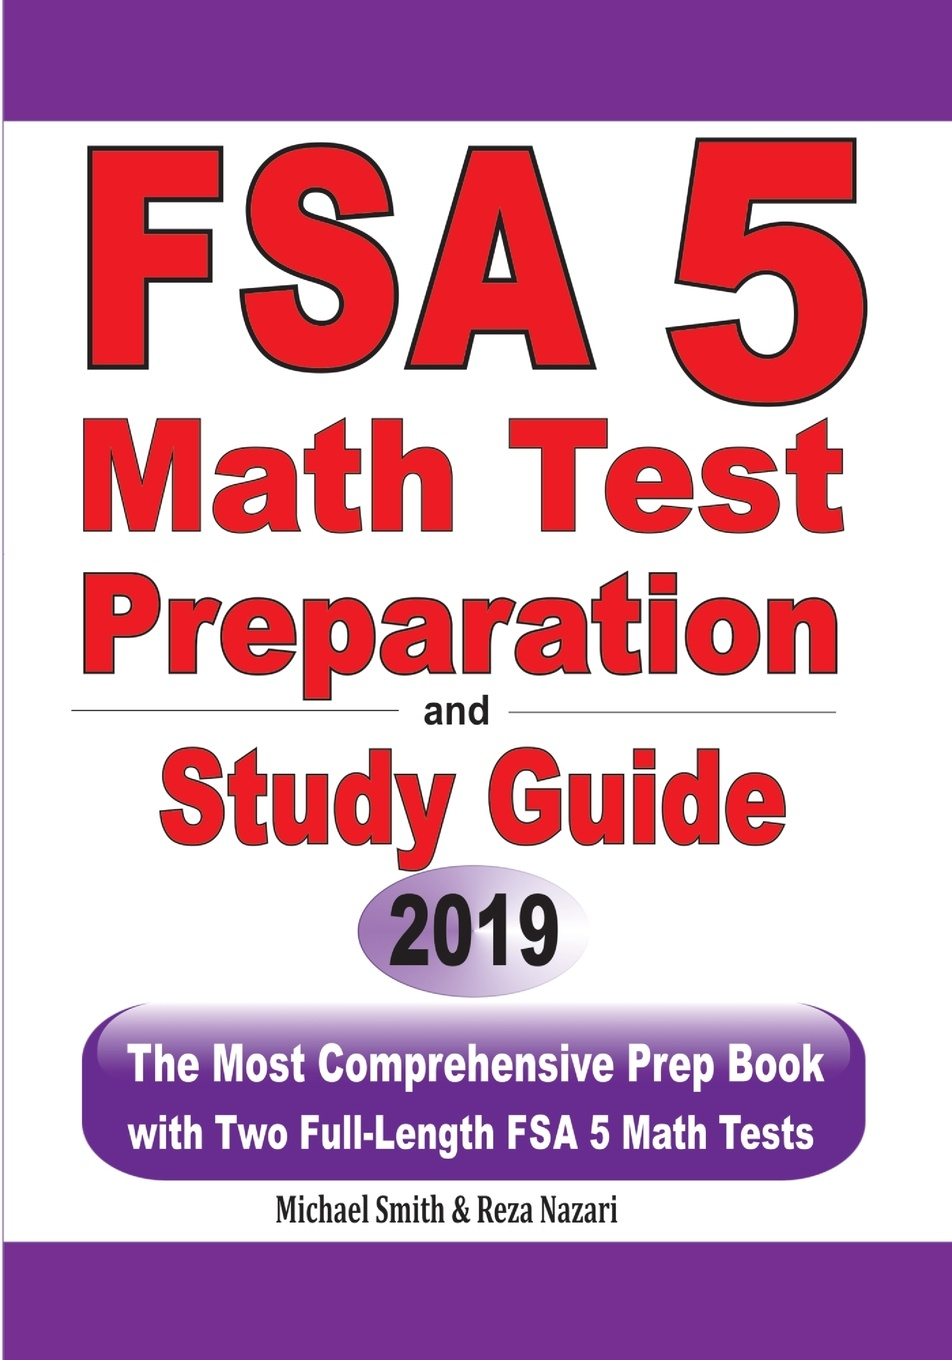 Michael Smith, Reza Nazari FSA 5 Math Test Preparation and Study Guide. The Most Comprehensive Prep Book with Two Full-Length FSA Math Tests